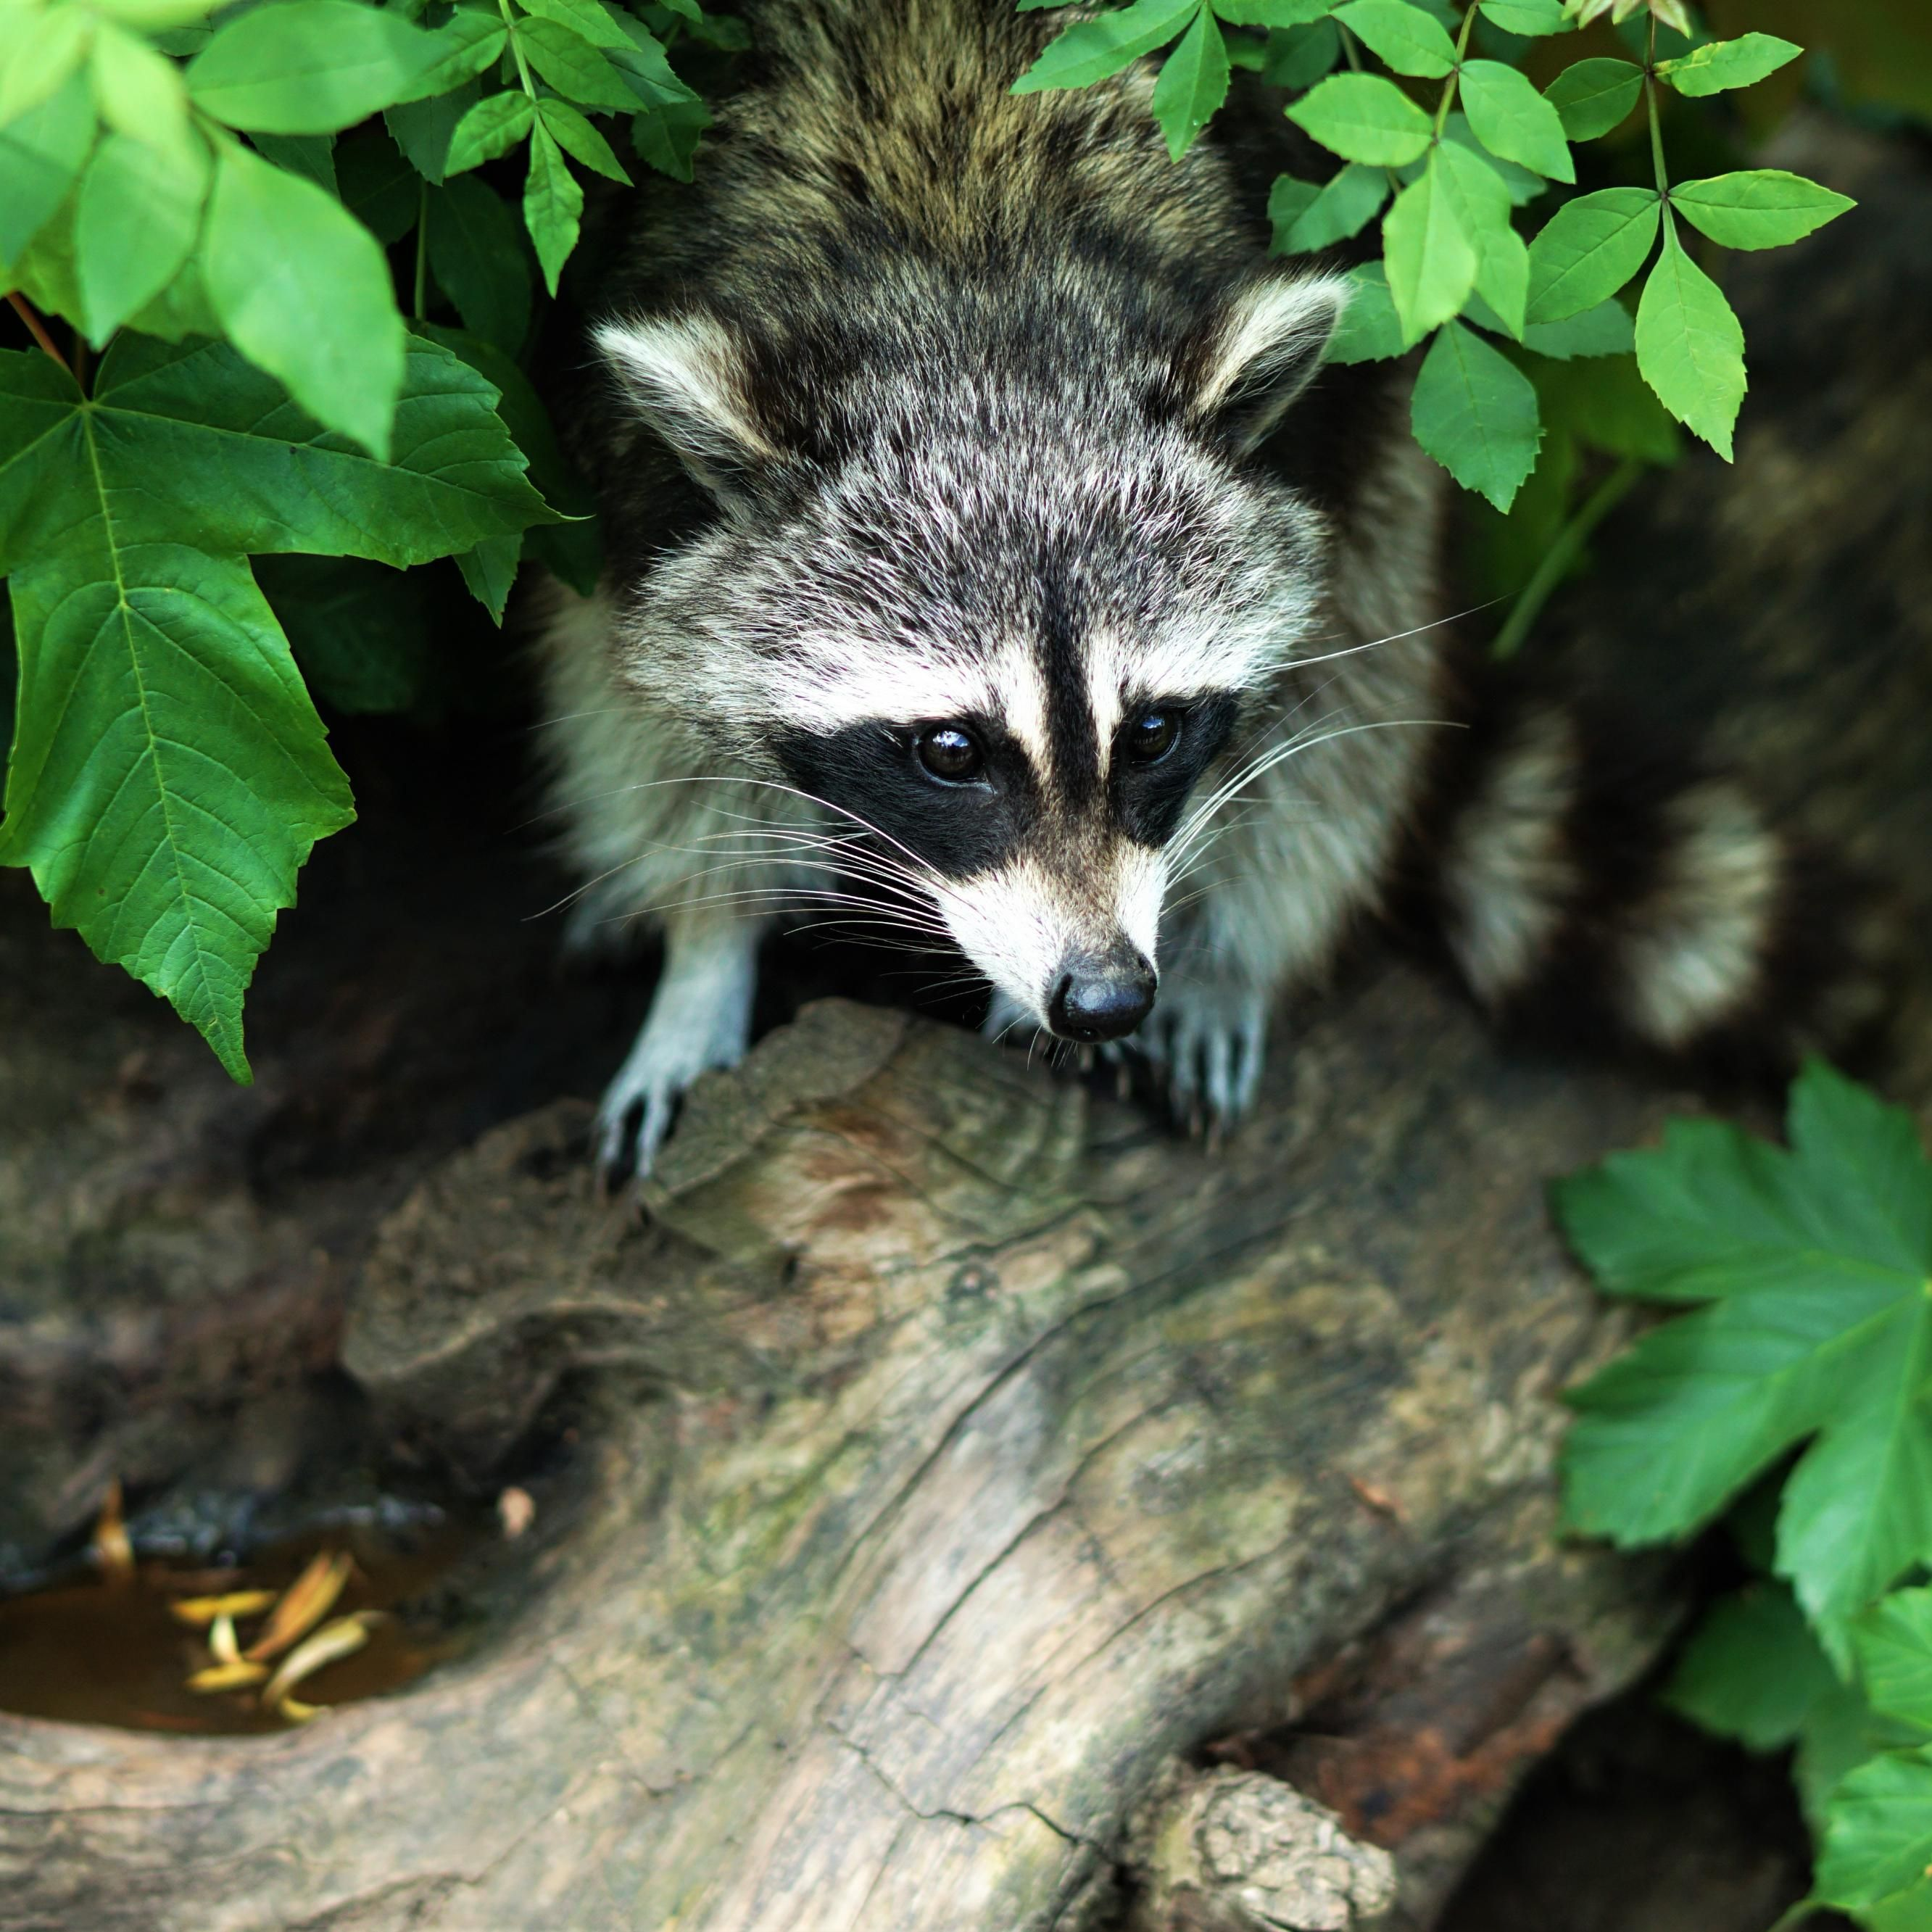 How To Keep Raccoons Out Of Your Home Animals, Baby raccoon